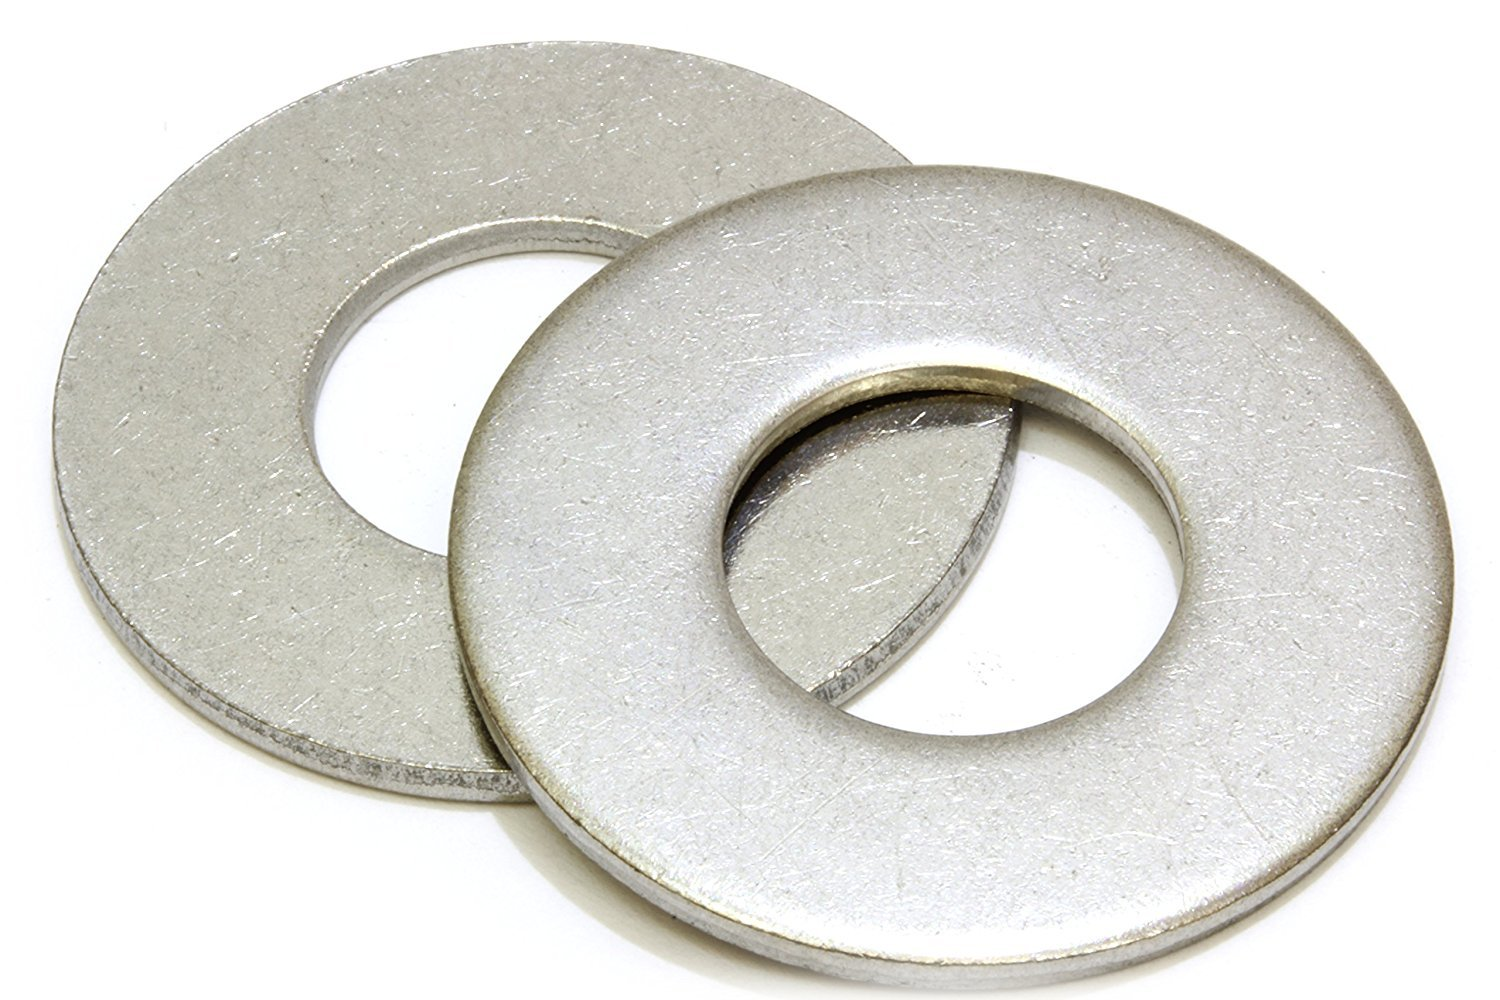 1/2'' Stainless Flat Washer, 1-1/4'' Outside Diameter (100 Pack)- Choose Size, by Bolt Dropper, 18-8 (304) Stainless Steel